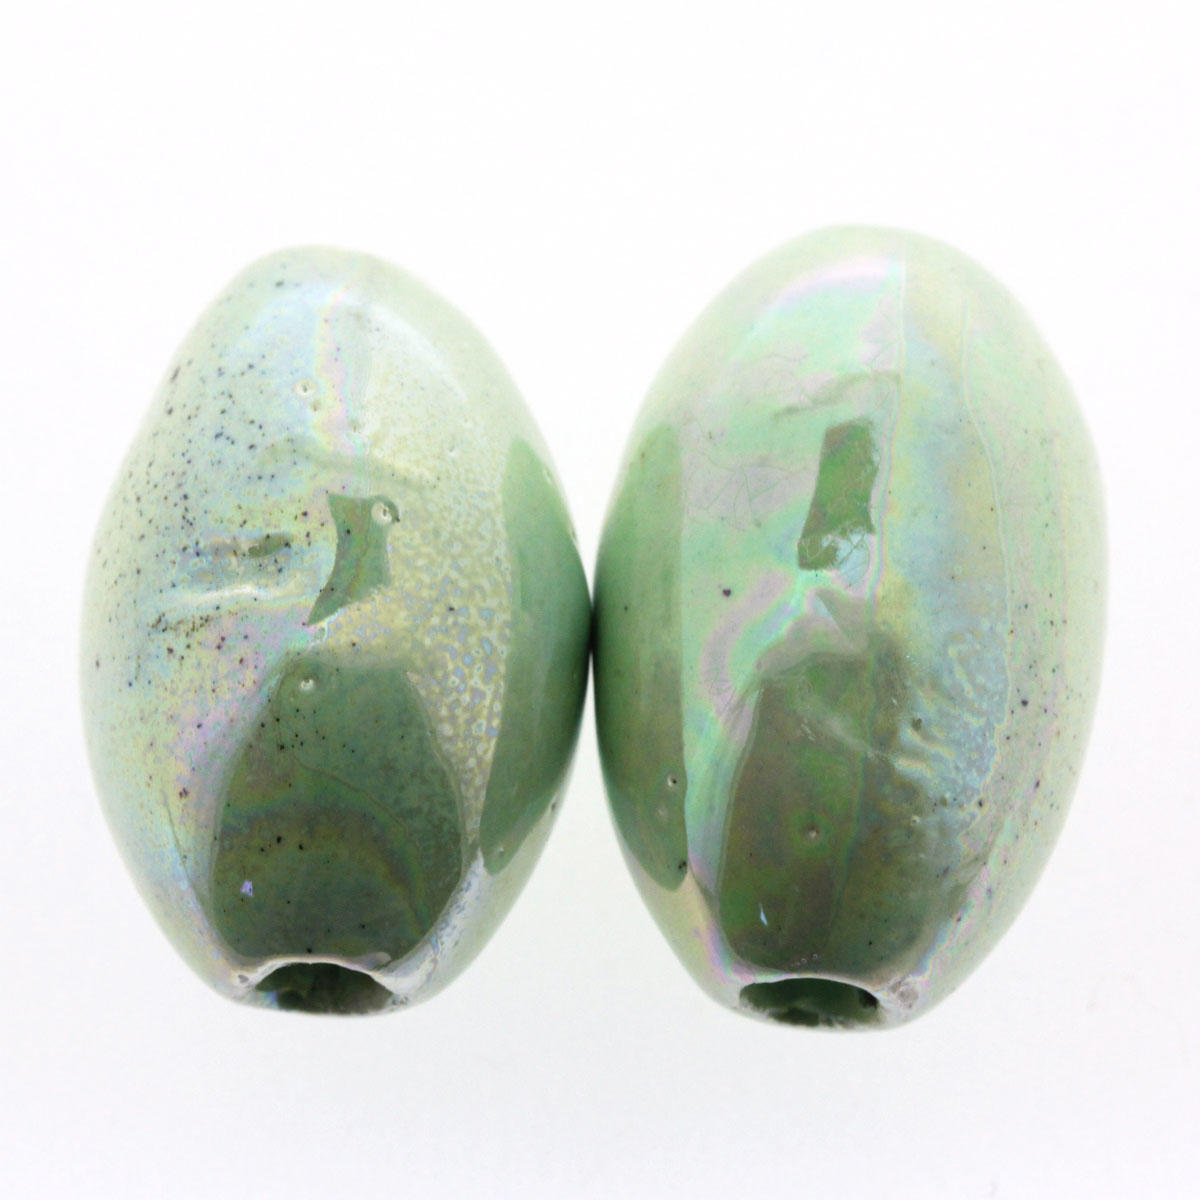 Pistachio Green Ceramic Melon Bead